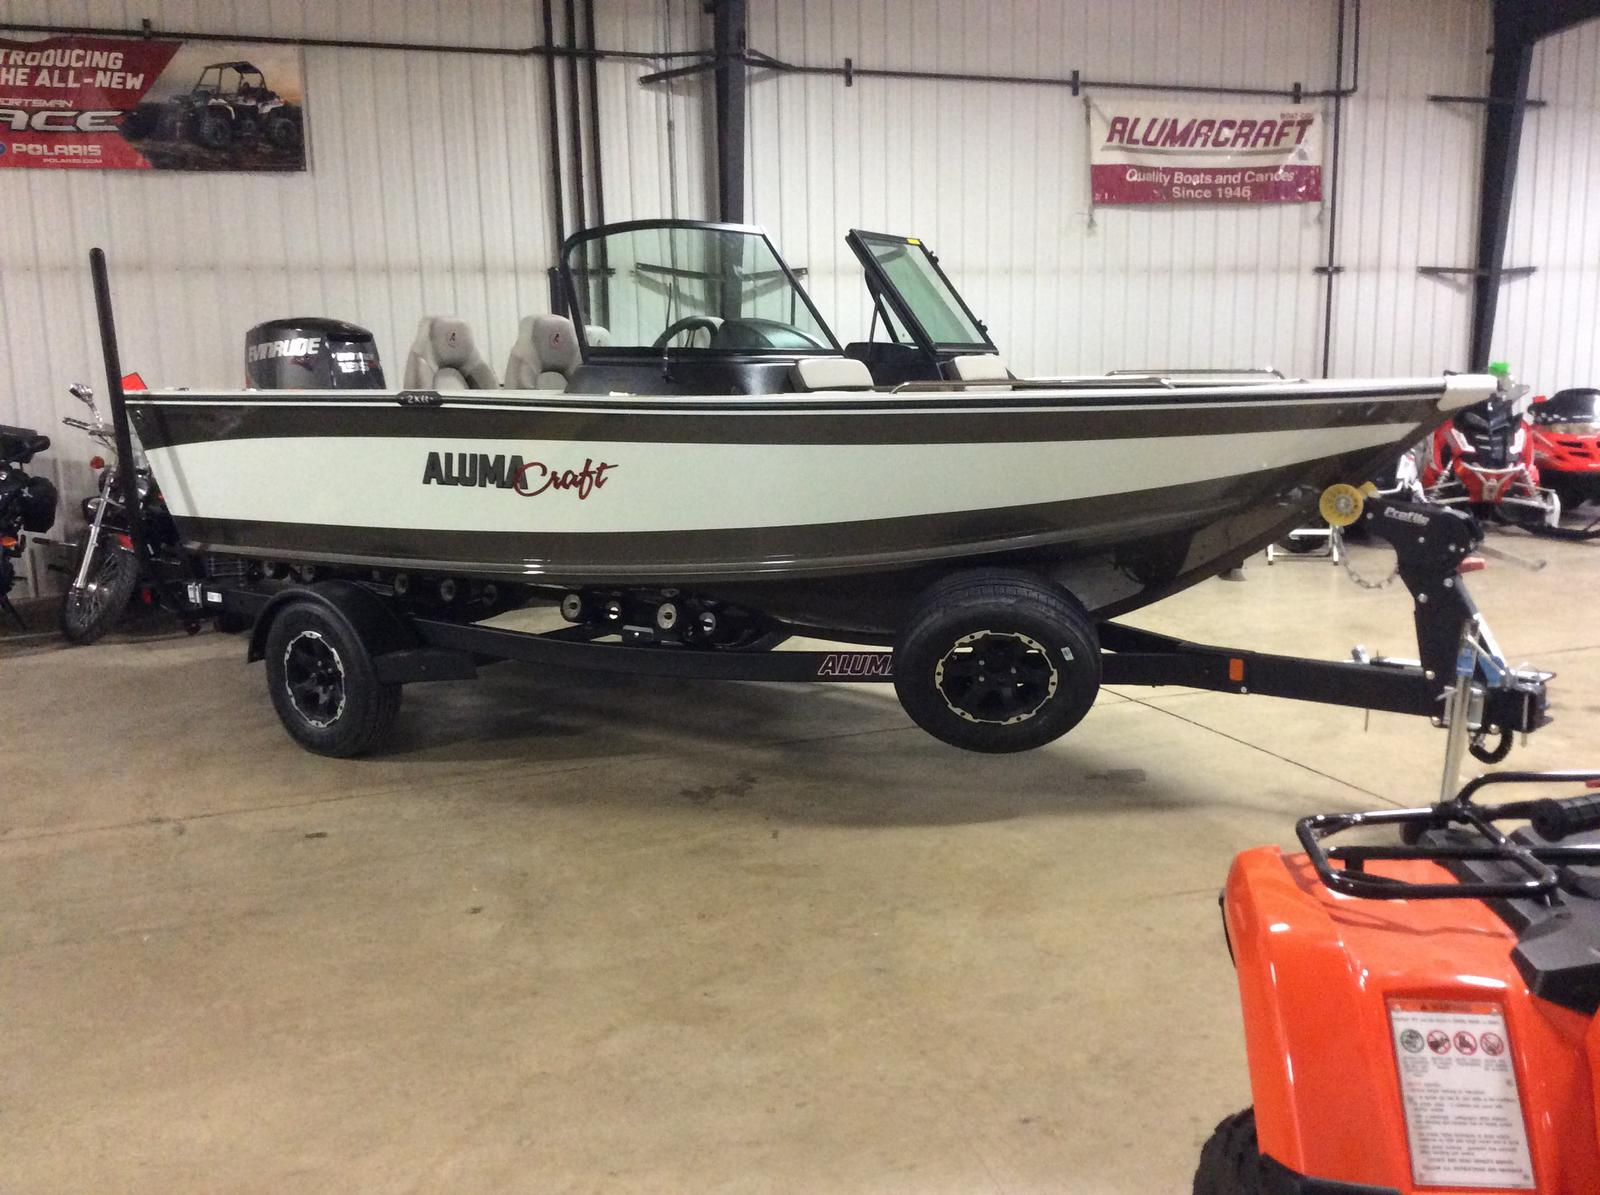 Inventory from value-your-trade, Alumacraft and Yamaha Action Sports